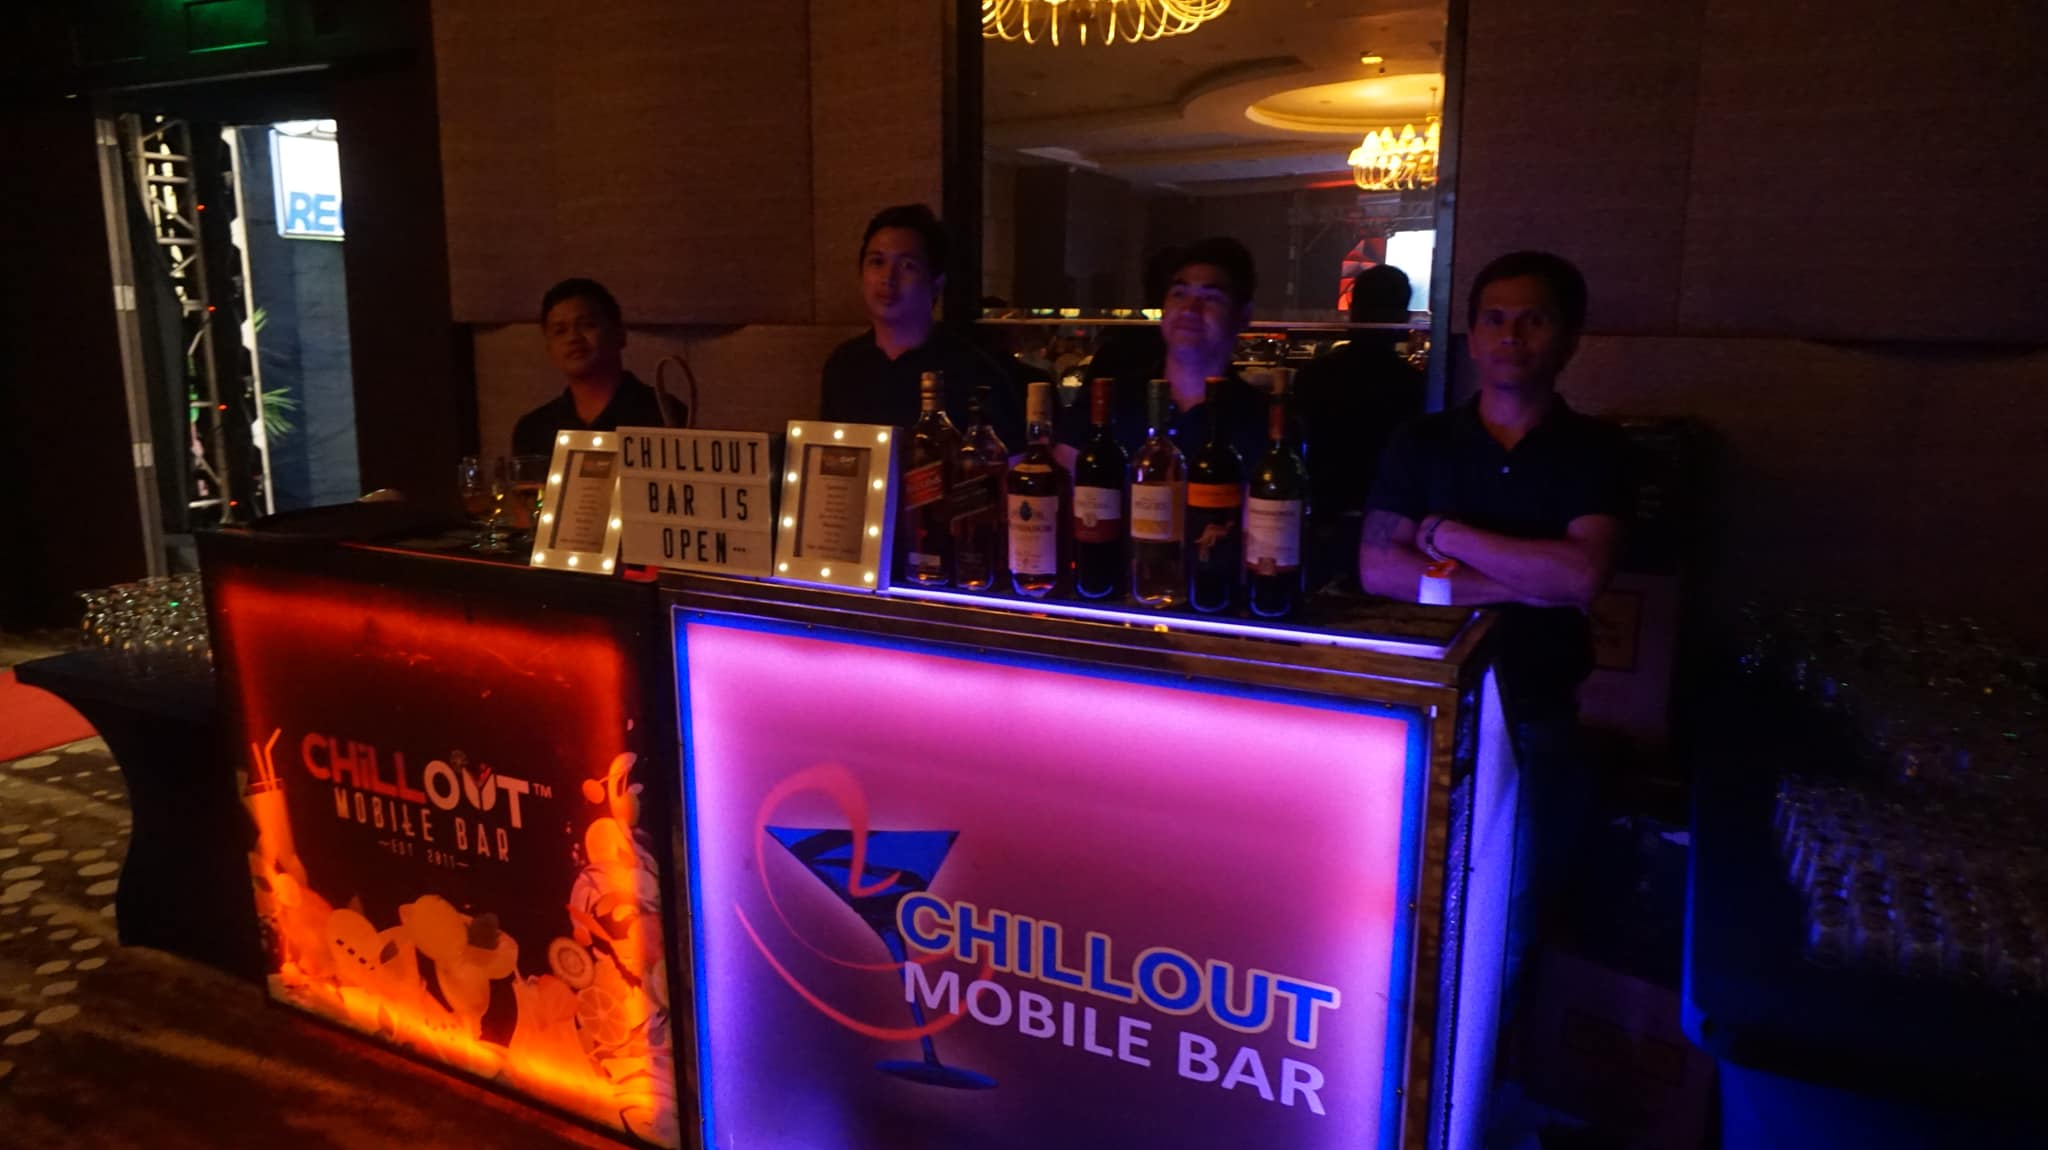 Photo from Chillout Mobile Bar